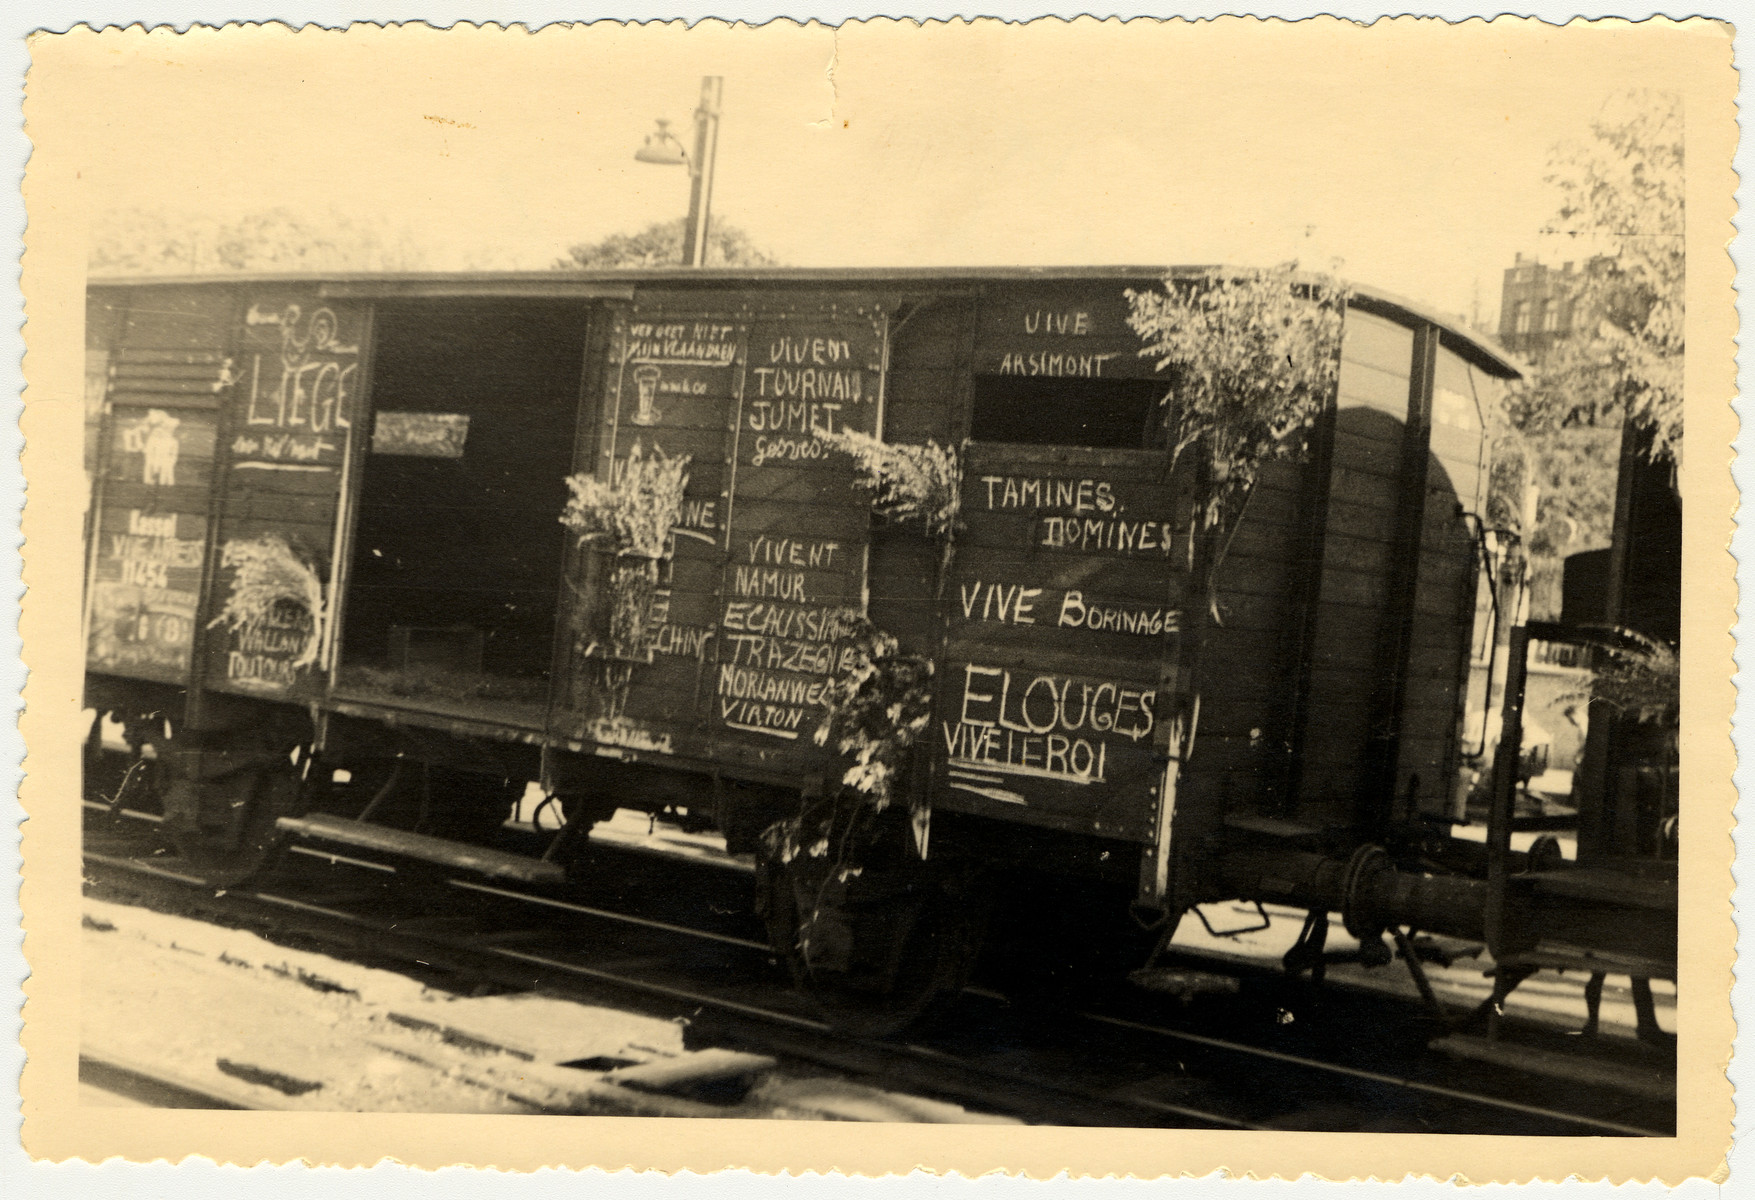 A photograph taken by Myron Moses showing a railcar after liberation in Namur, Belgium.  The empty railcar is covered in French graffiti.    Myron wrote on the back of the photo:  Mom and Dad -  Displaced personnel and prisoners of war are transported in these box cars.  The liberated French enthusiastically write 'vive's all over this car. Snapped in Namur, Belgium.  Love forever, Myron